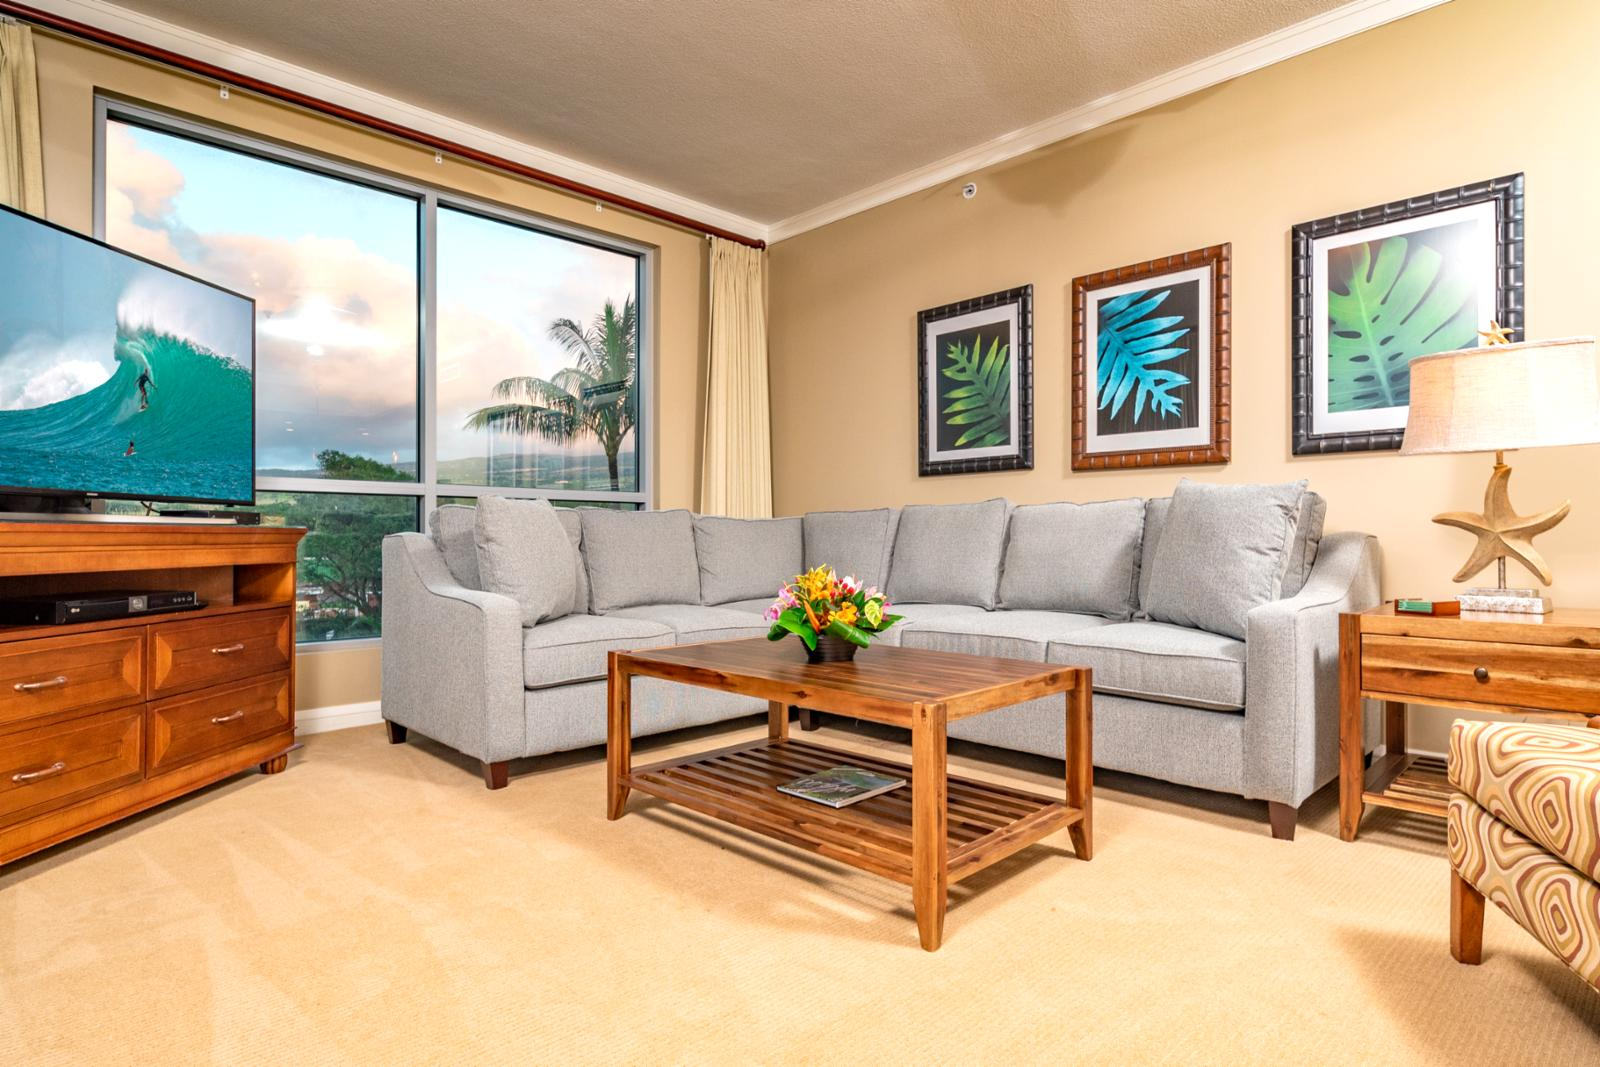 NEW pull out sleeper sofa with mountain views from the living area